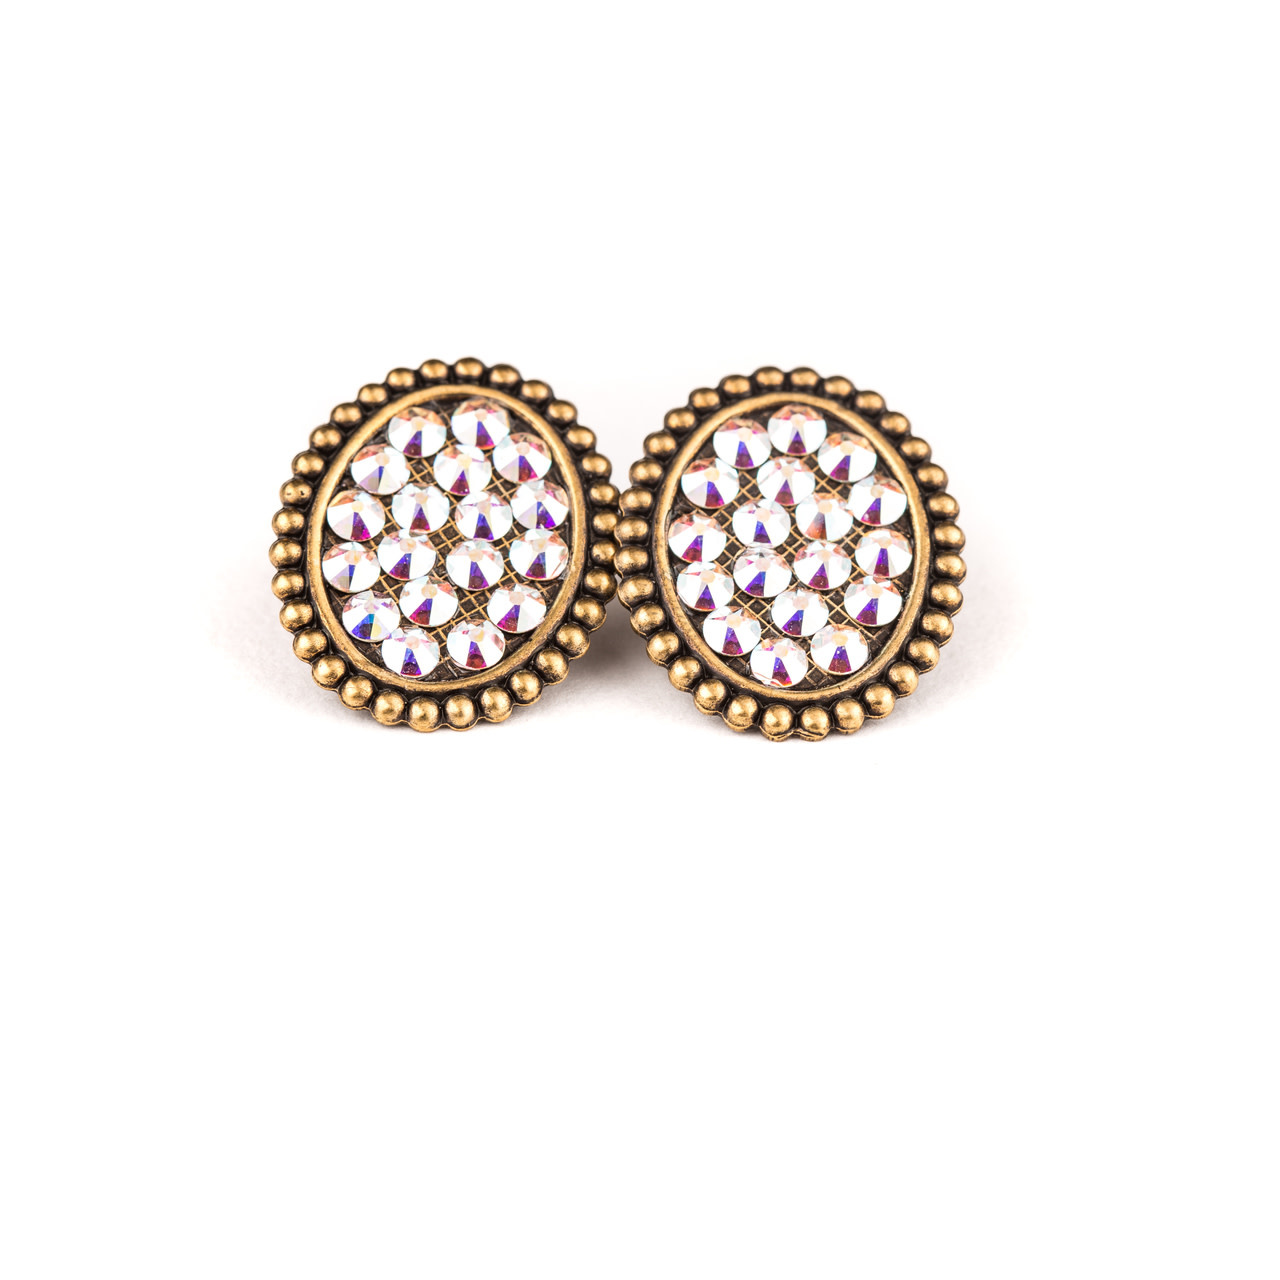 Bronze Mini Oval Post Earring w/ Crystals